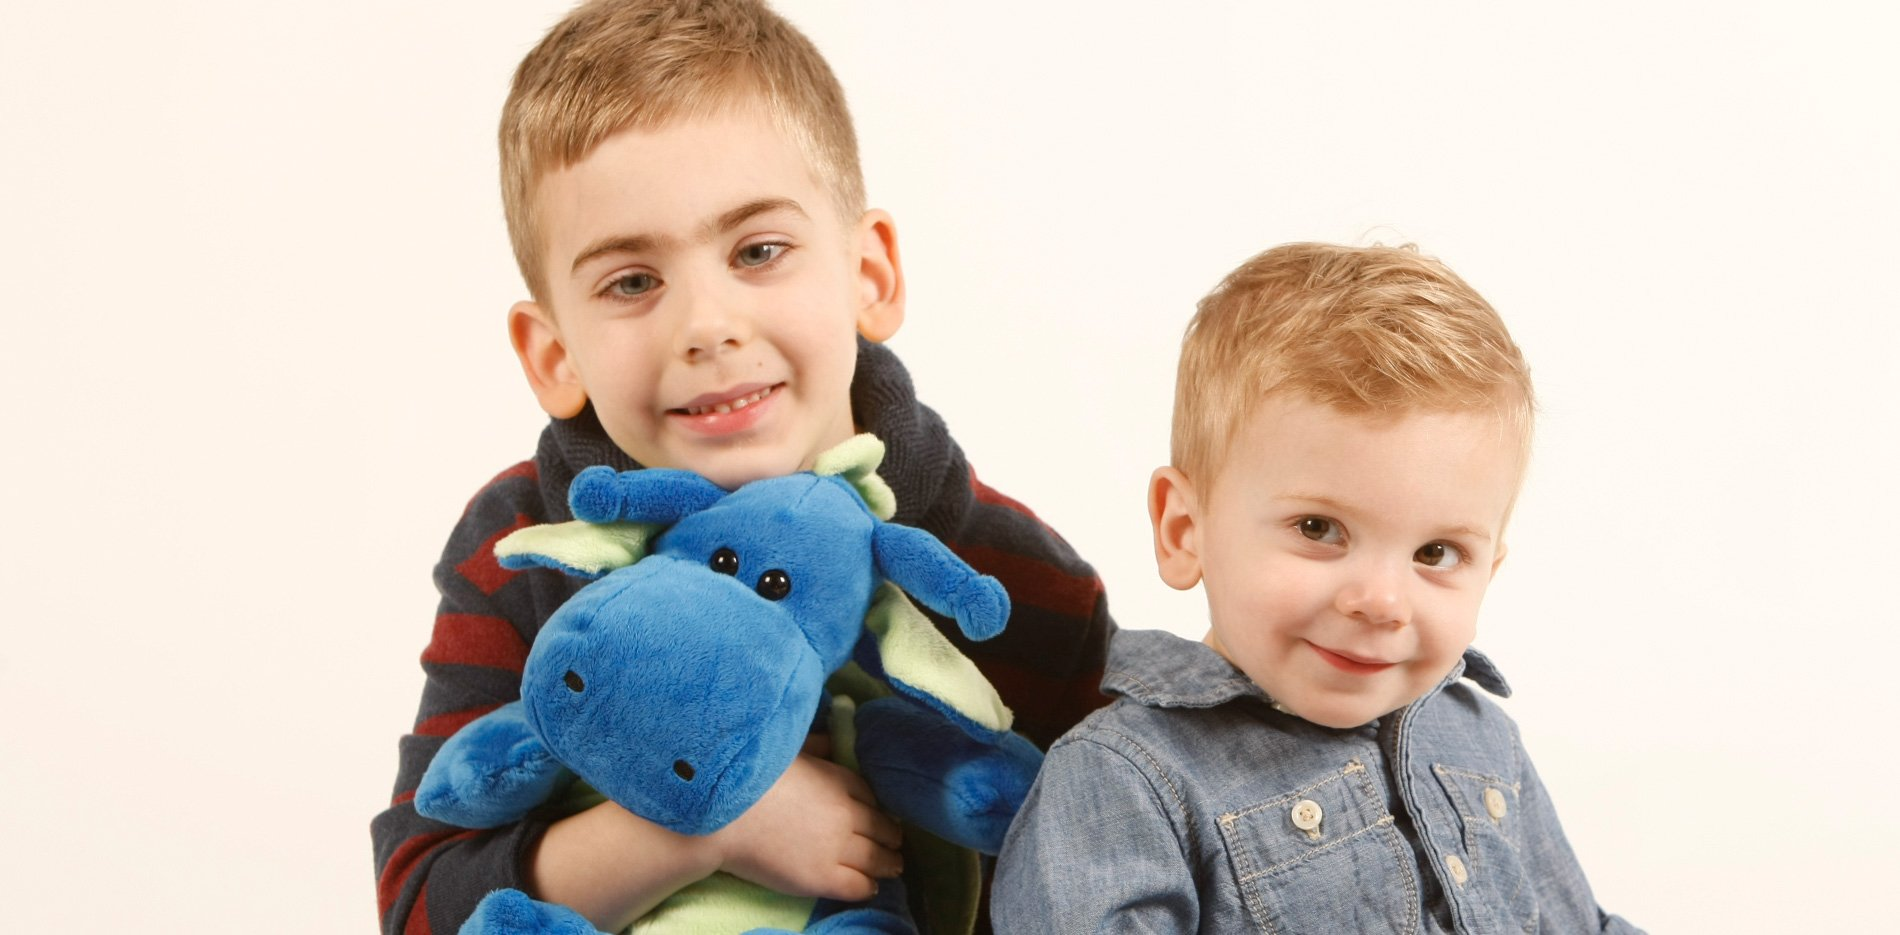 Two boy patients with stuffed toy